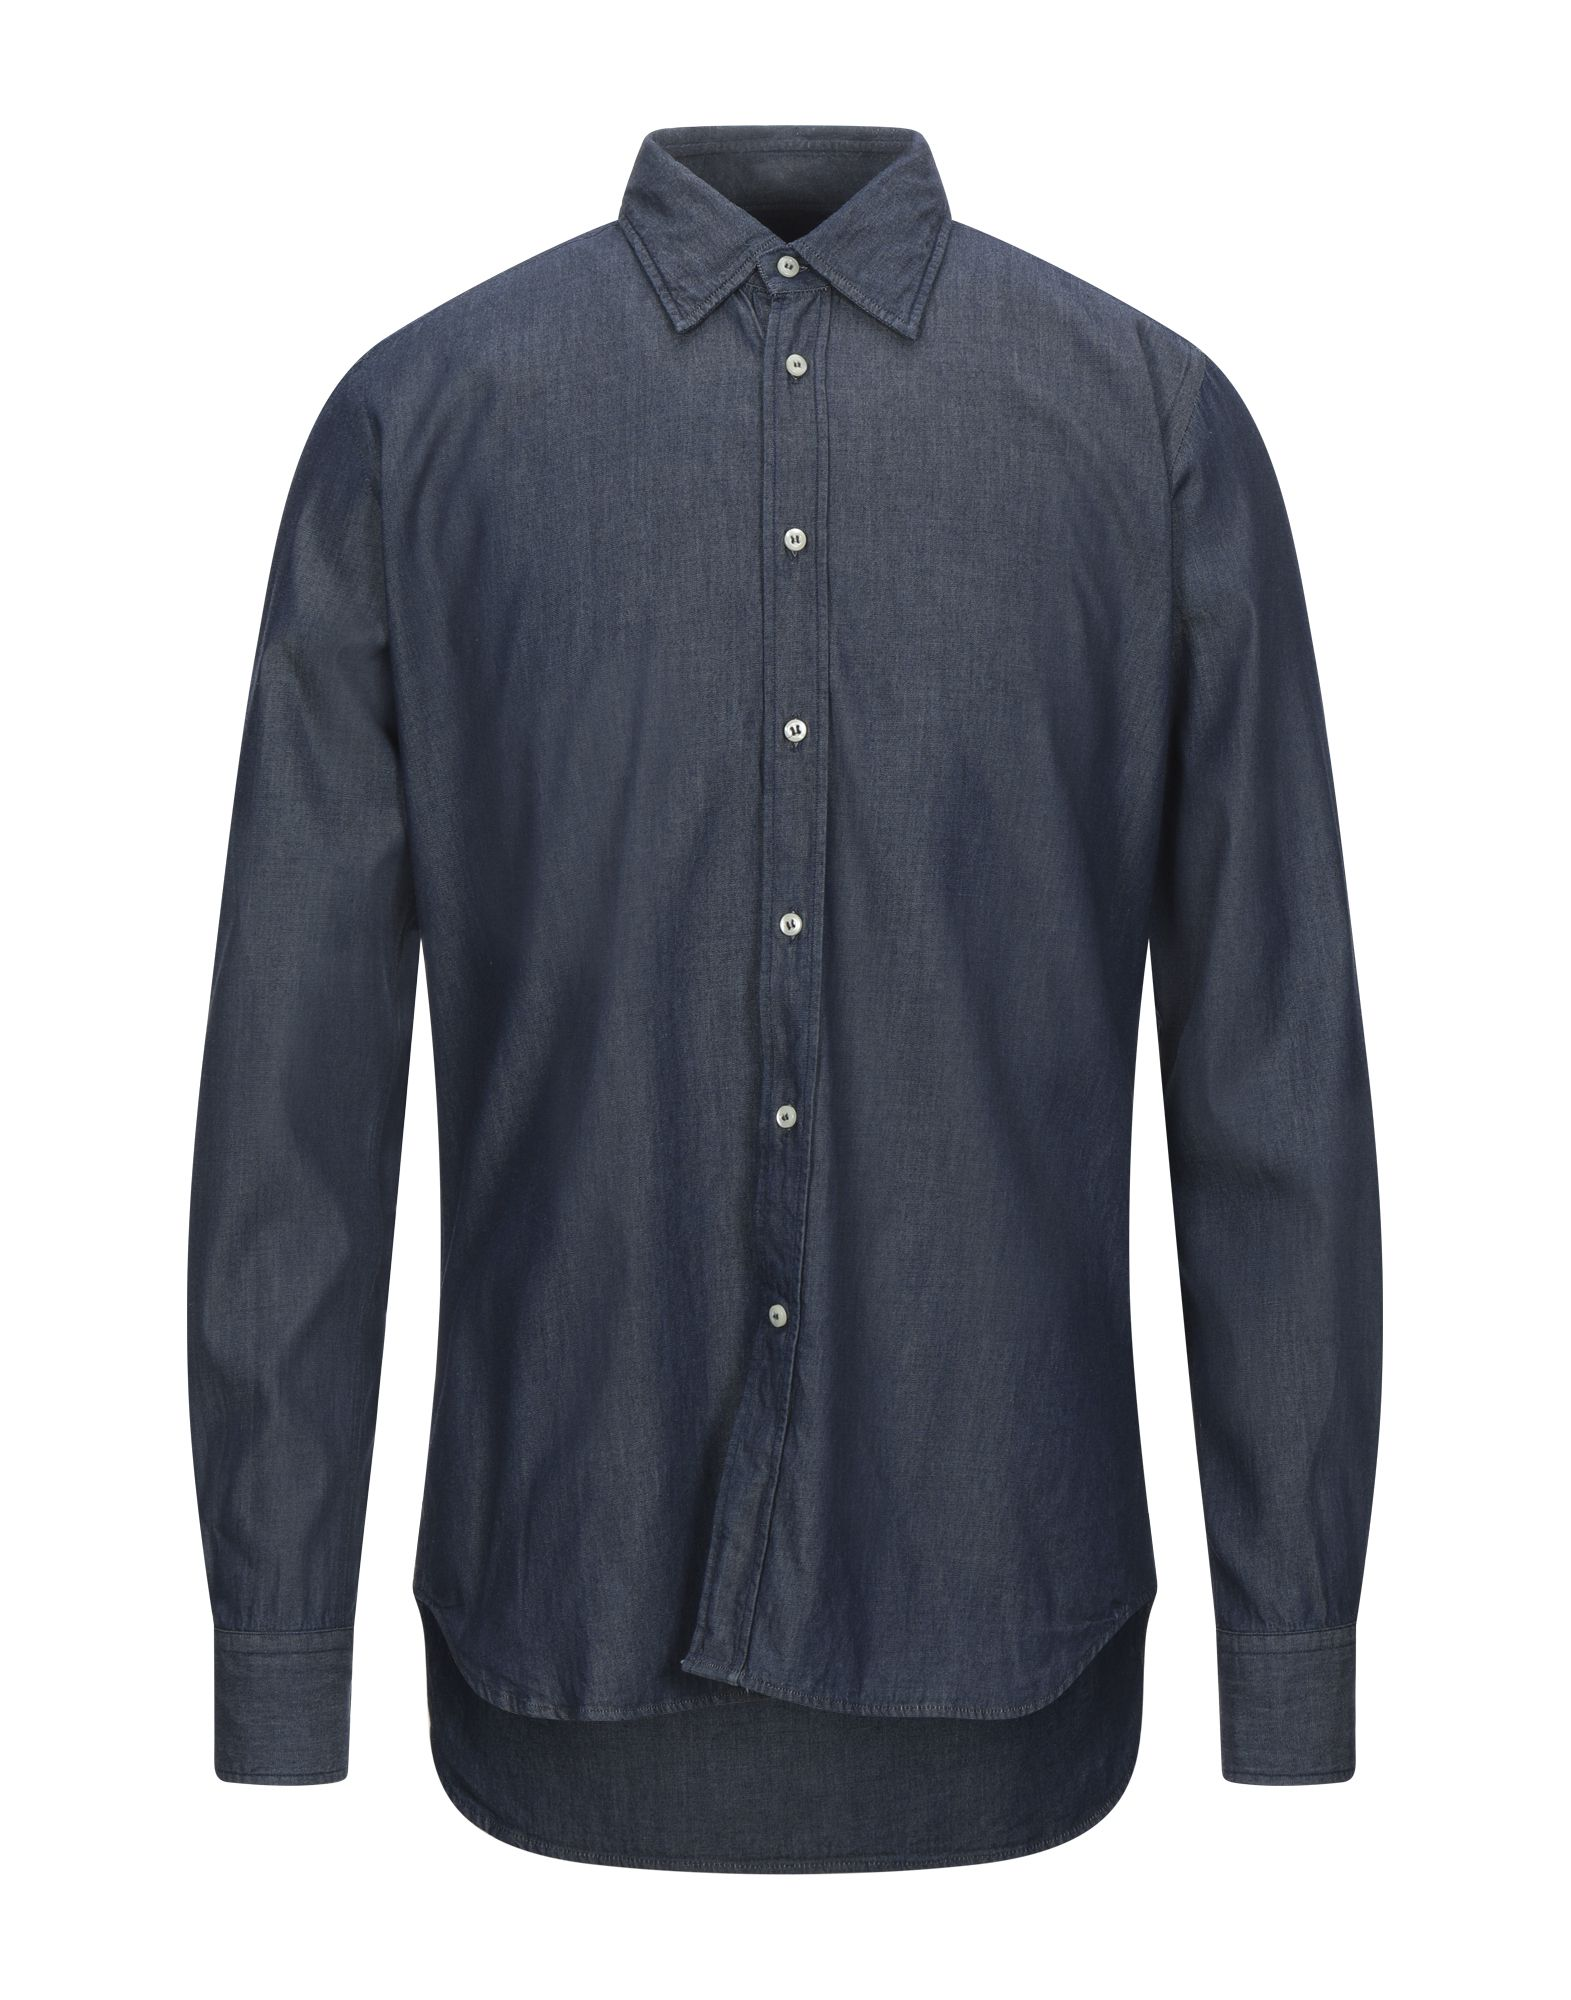 BEVILACQUA Denim Shirt in Blue